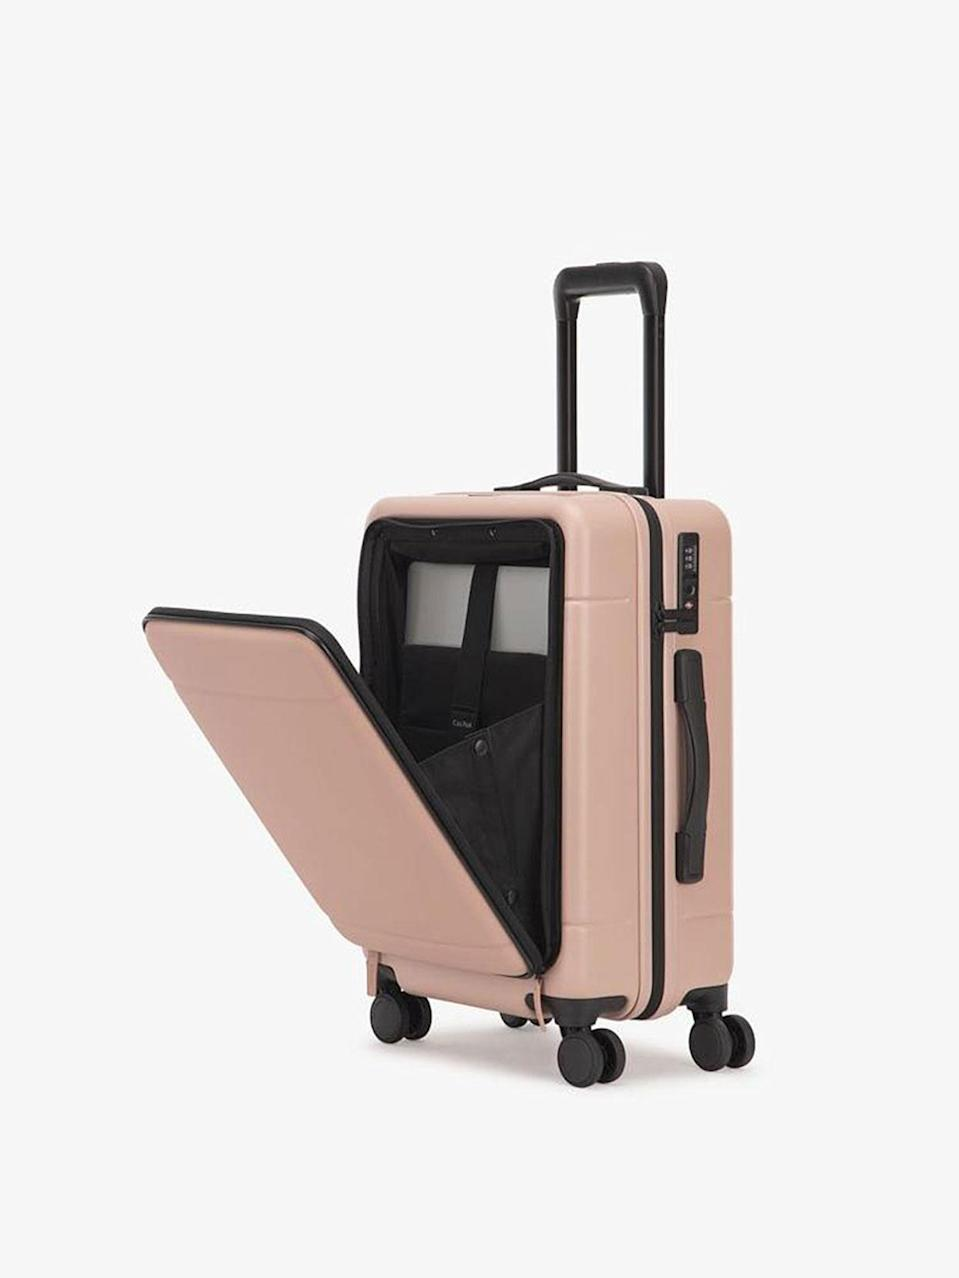 <p>This adorable tiny carry-on has multiple compartments to compactly fit all your shoes, accessories, and outfit changes. There's even a laptop sleeve in the front pocket, so you don't have to worry about carrying a separate work bag. The lock is also TSA-approved, meaning your valuables will no doubt stay safe.</p>